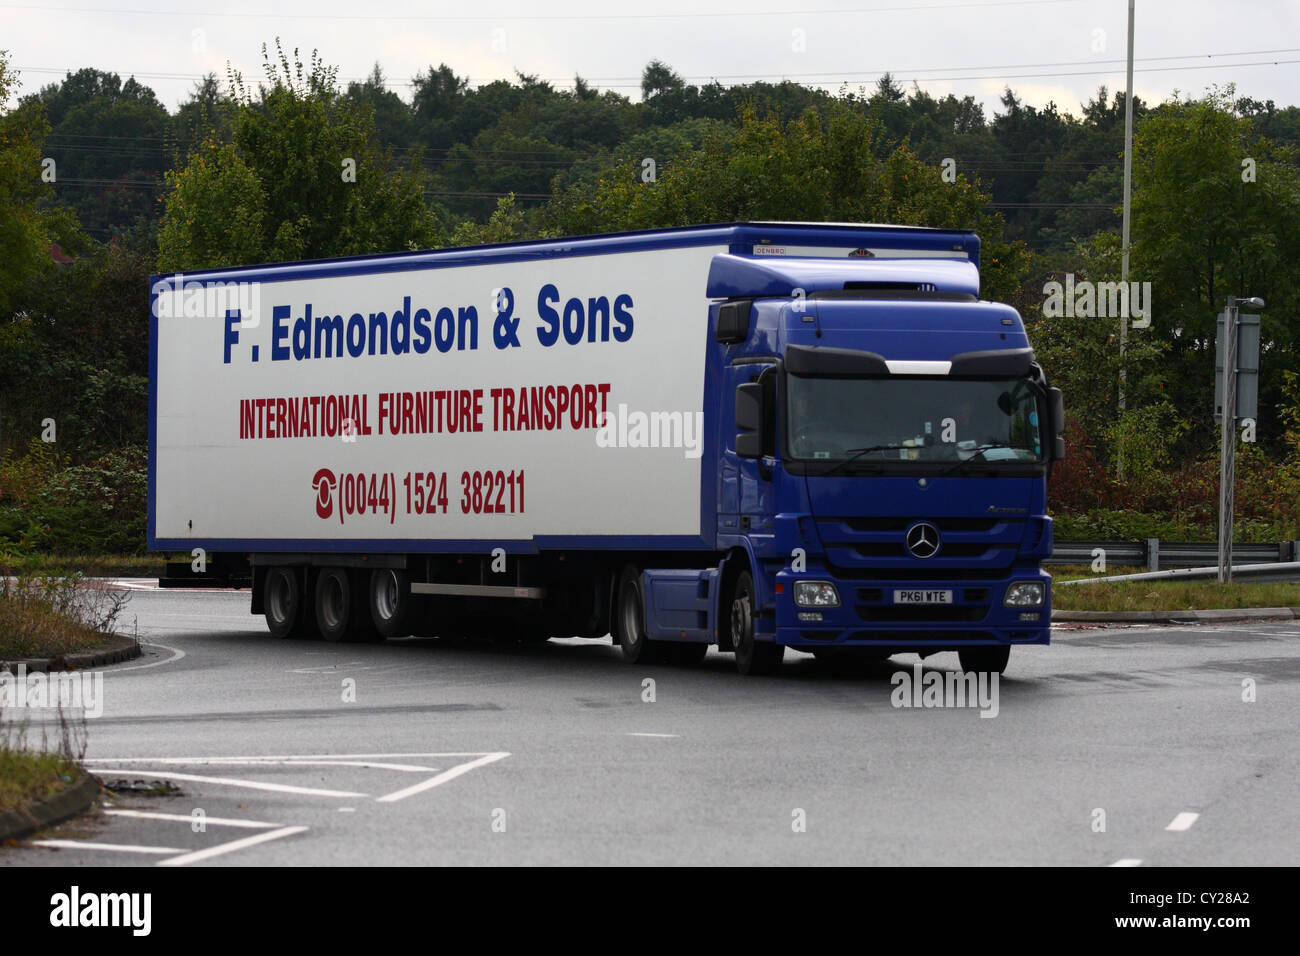 A 'F Edmondson' truck traveling along a road in England - Stock Image